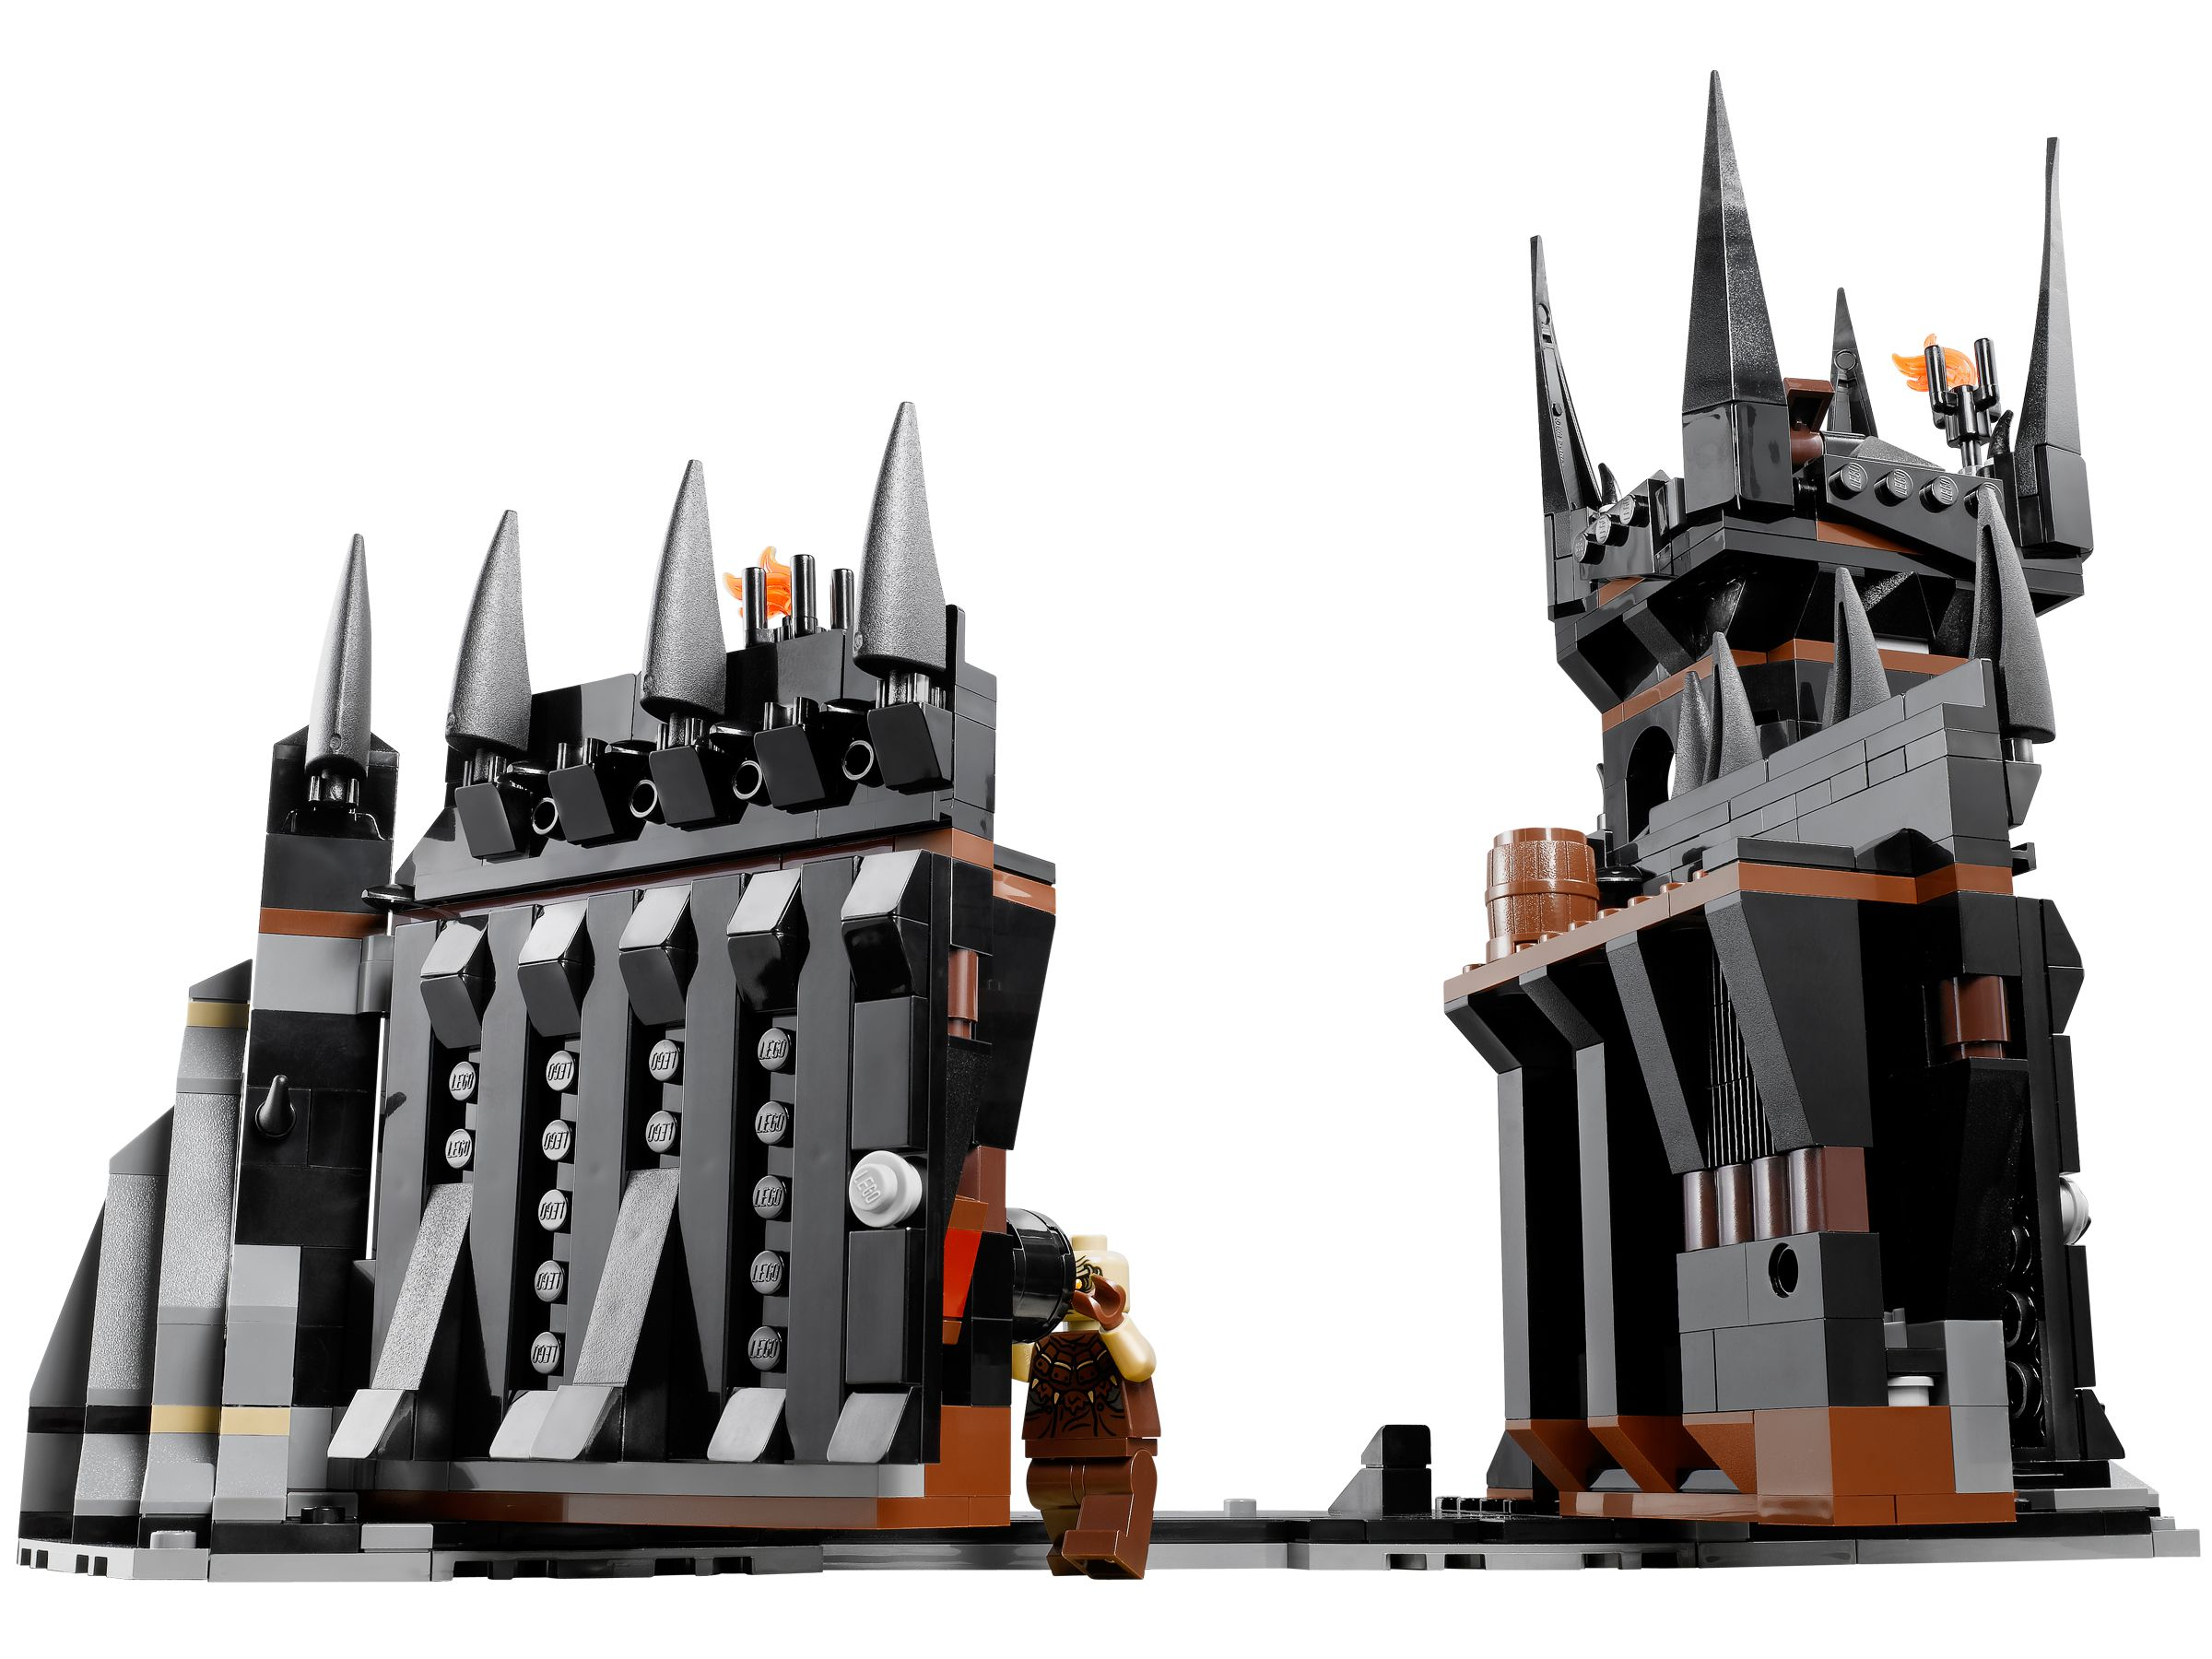 LEGO Lord of the Rings 79007 Die Schlacht am Schwarzen Tor LEGO_79007_alt5.jpg